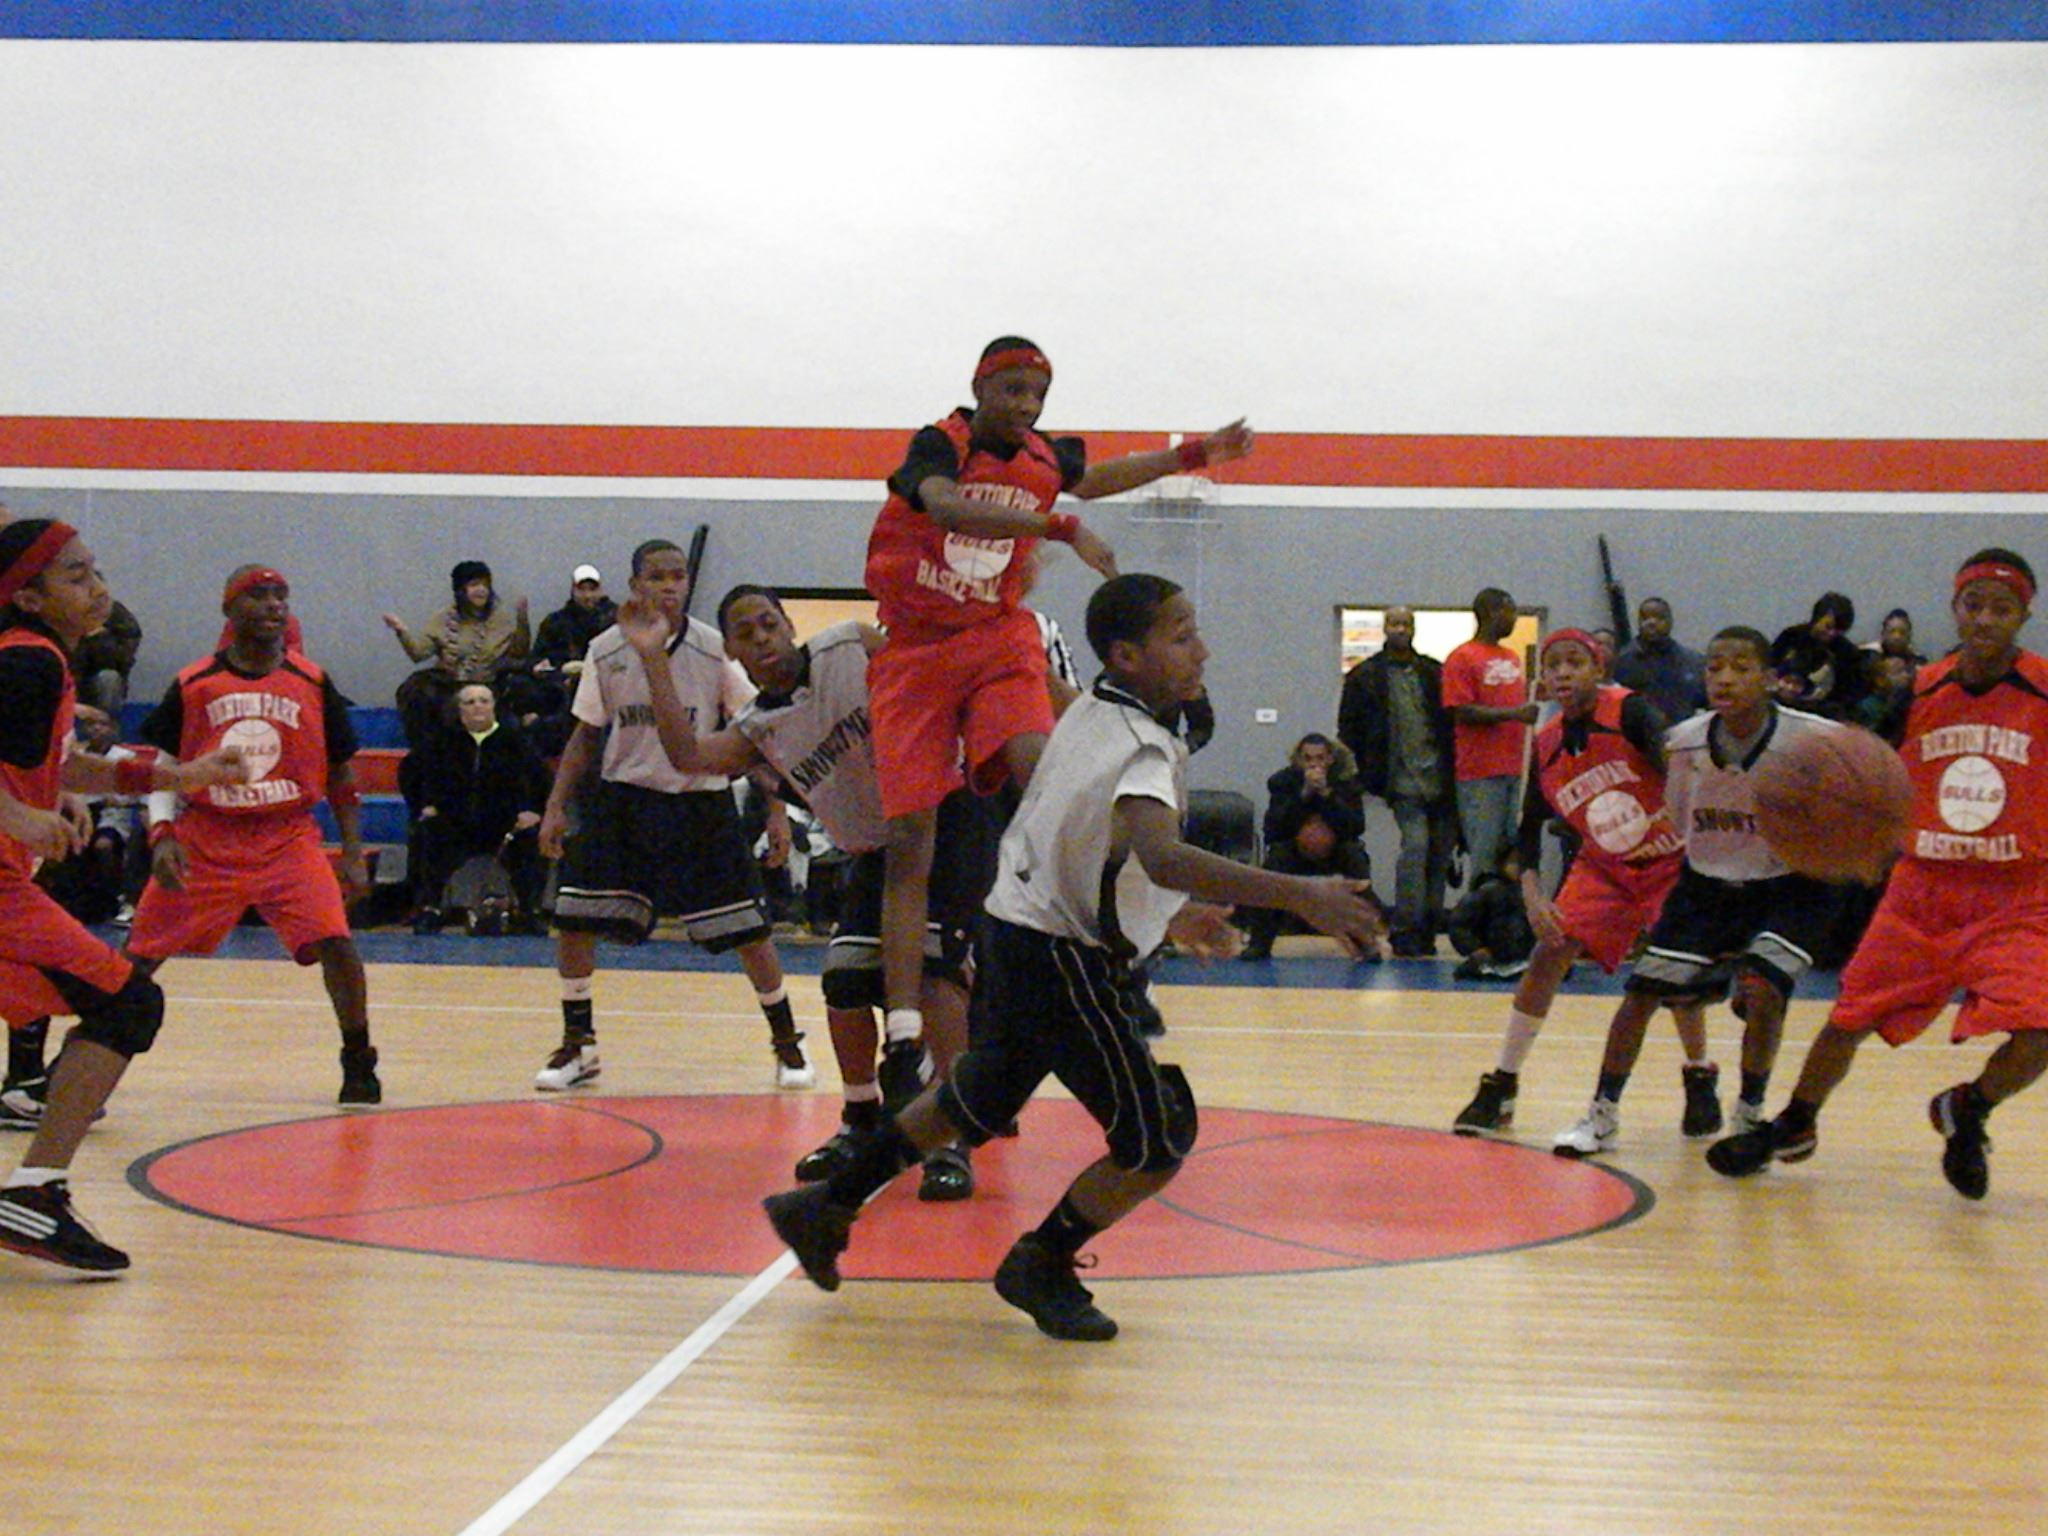 YBL 2014 Jump Ball In-Game